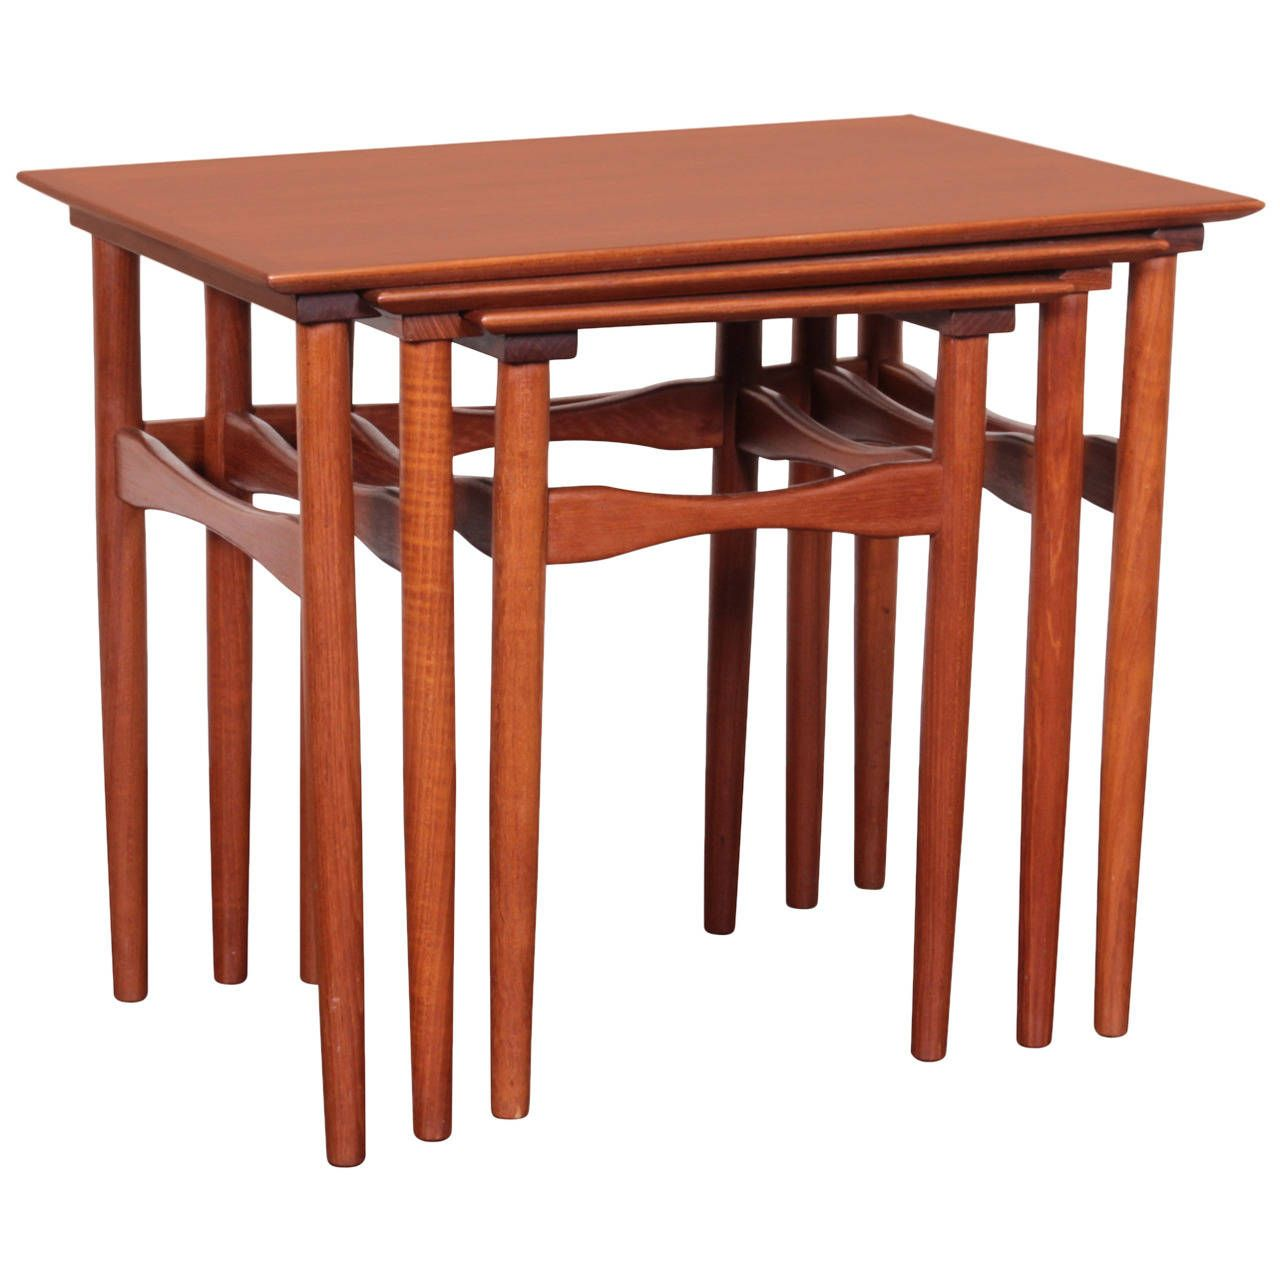 View This Item And Discover Similar Nesting Tables And Stacking Tables For  Sale At   Comprising Three Tables Of Graduated Size, Each Table With  Rectangular ...